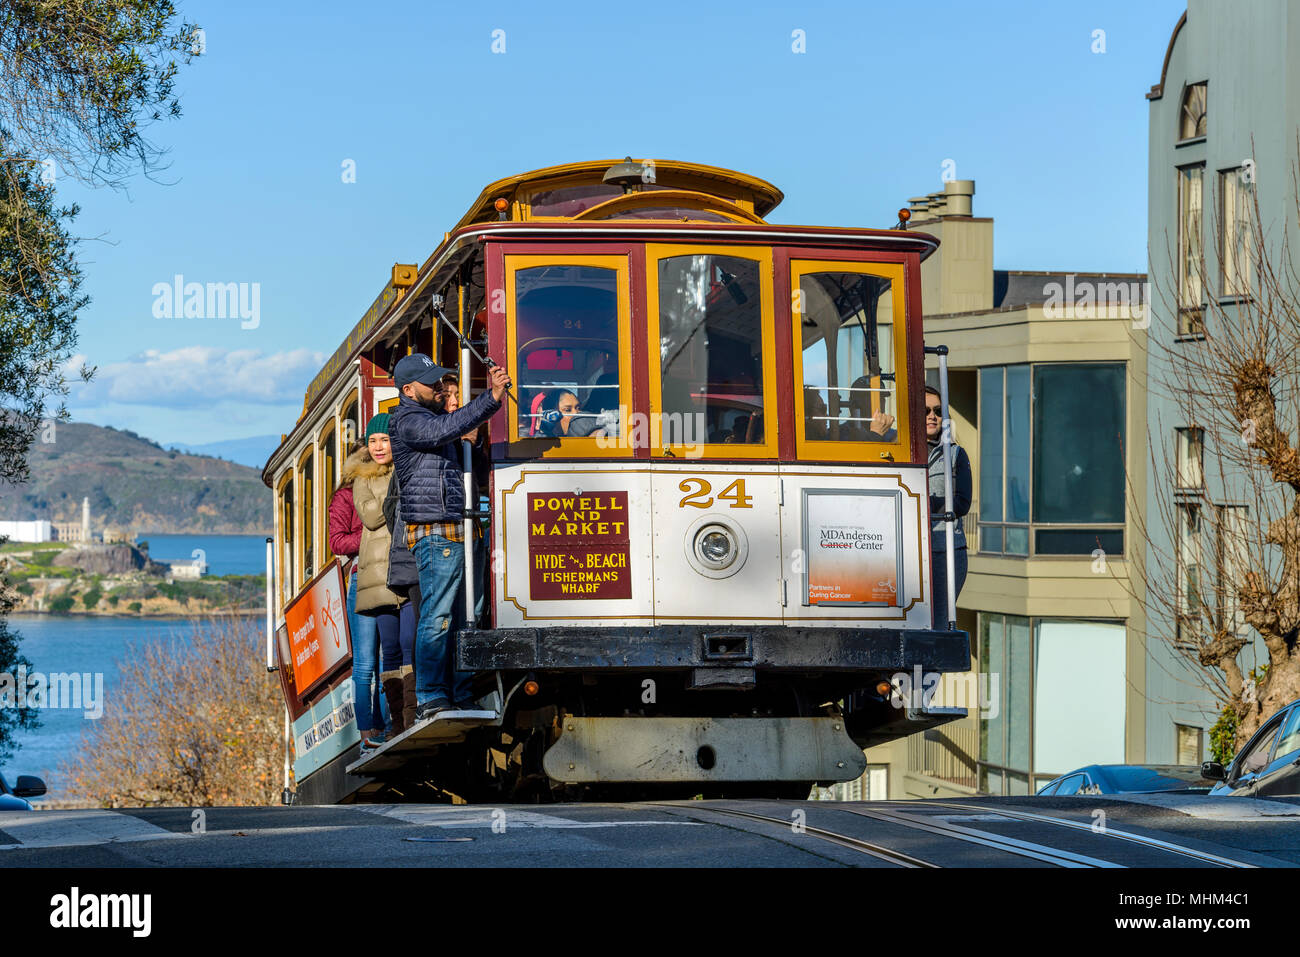 Street Cable Car - A cable car climbing up to the top of steep Russian Hill on Hyde St, with Alcatraz Island in background. San Francisco, CA, USA. - Stock Image